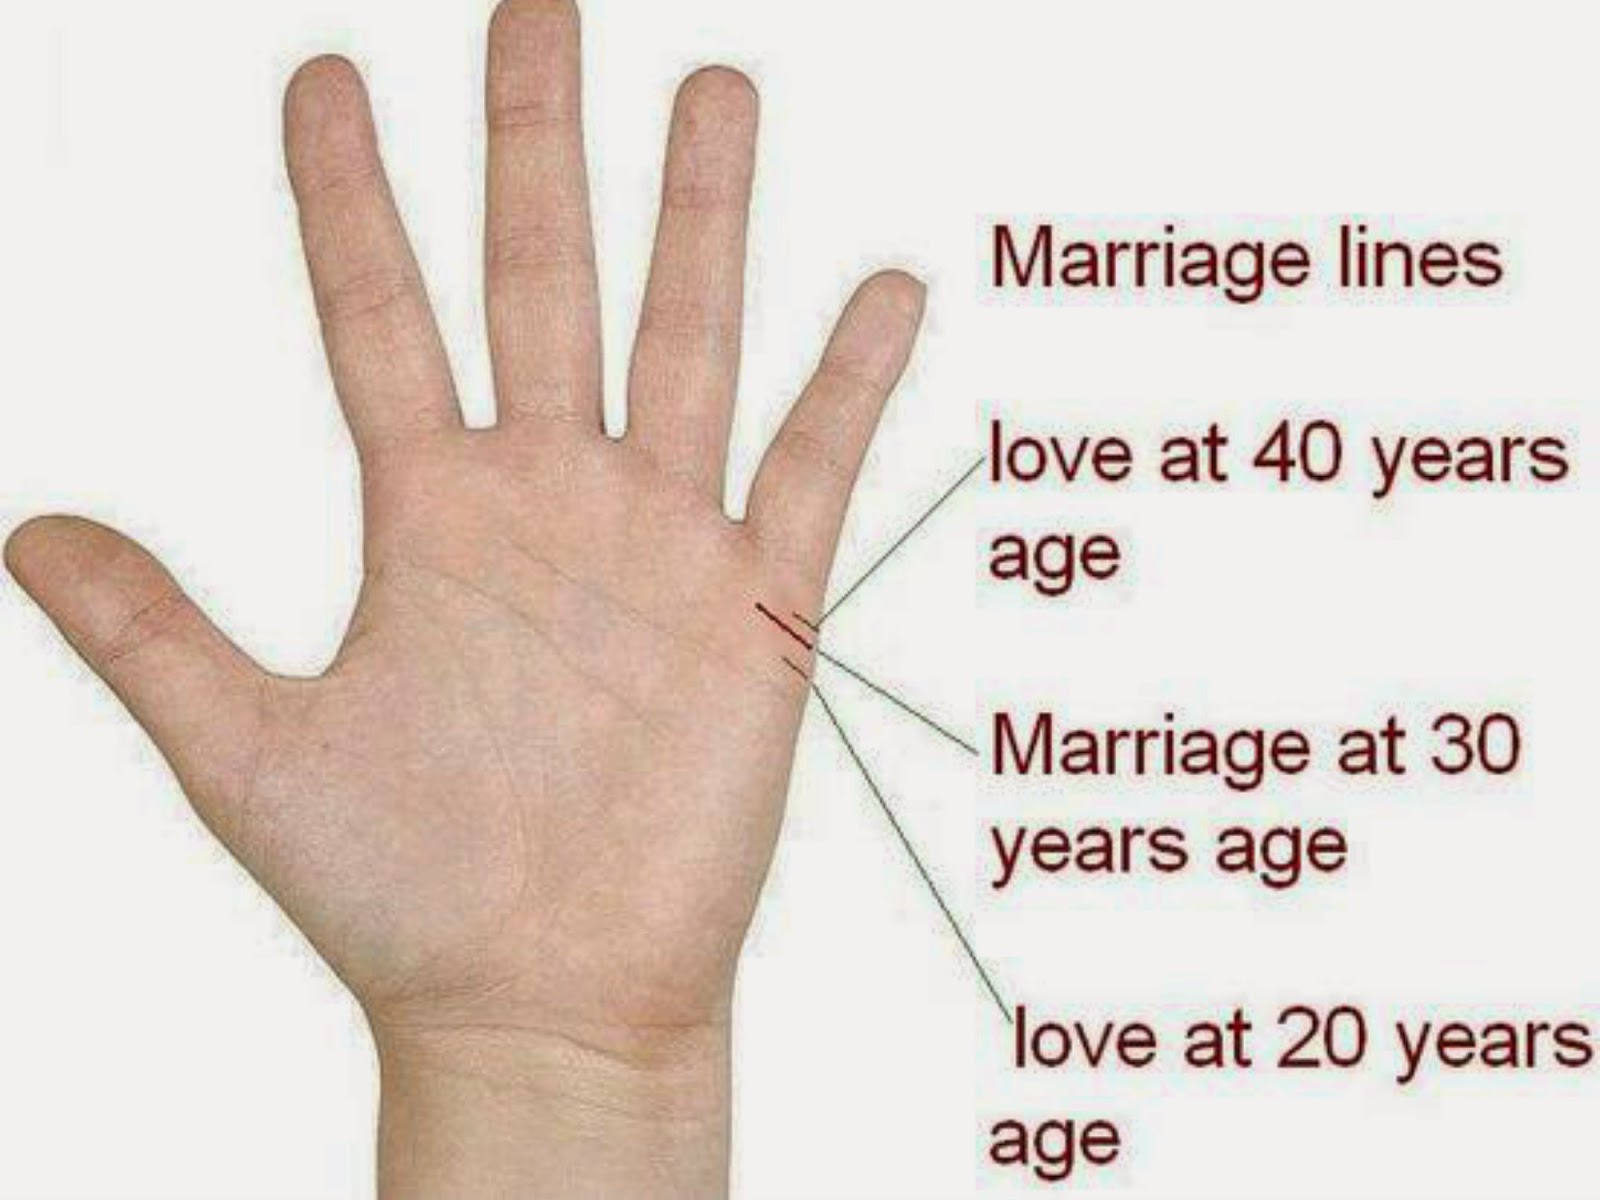 FIGURE OUT THE AGE THAT YOU WILL GET MARRIED